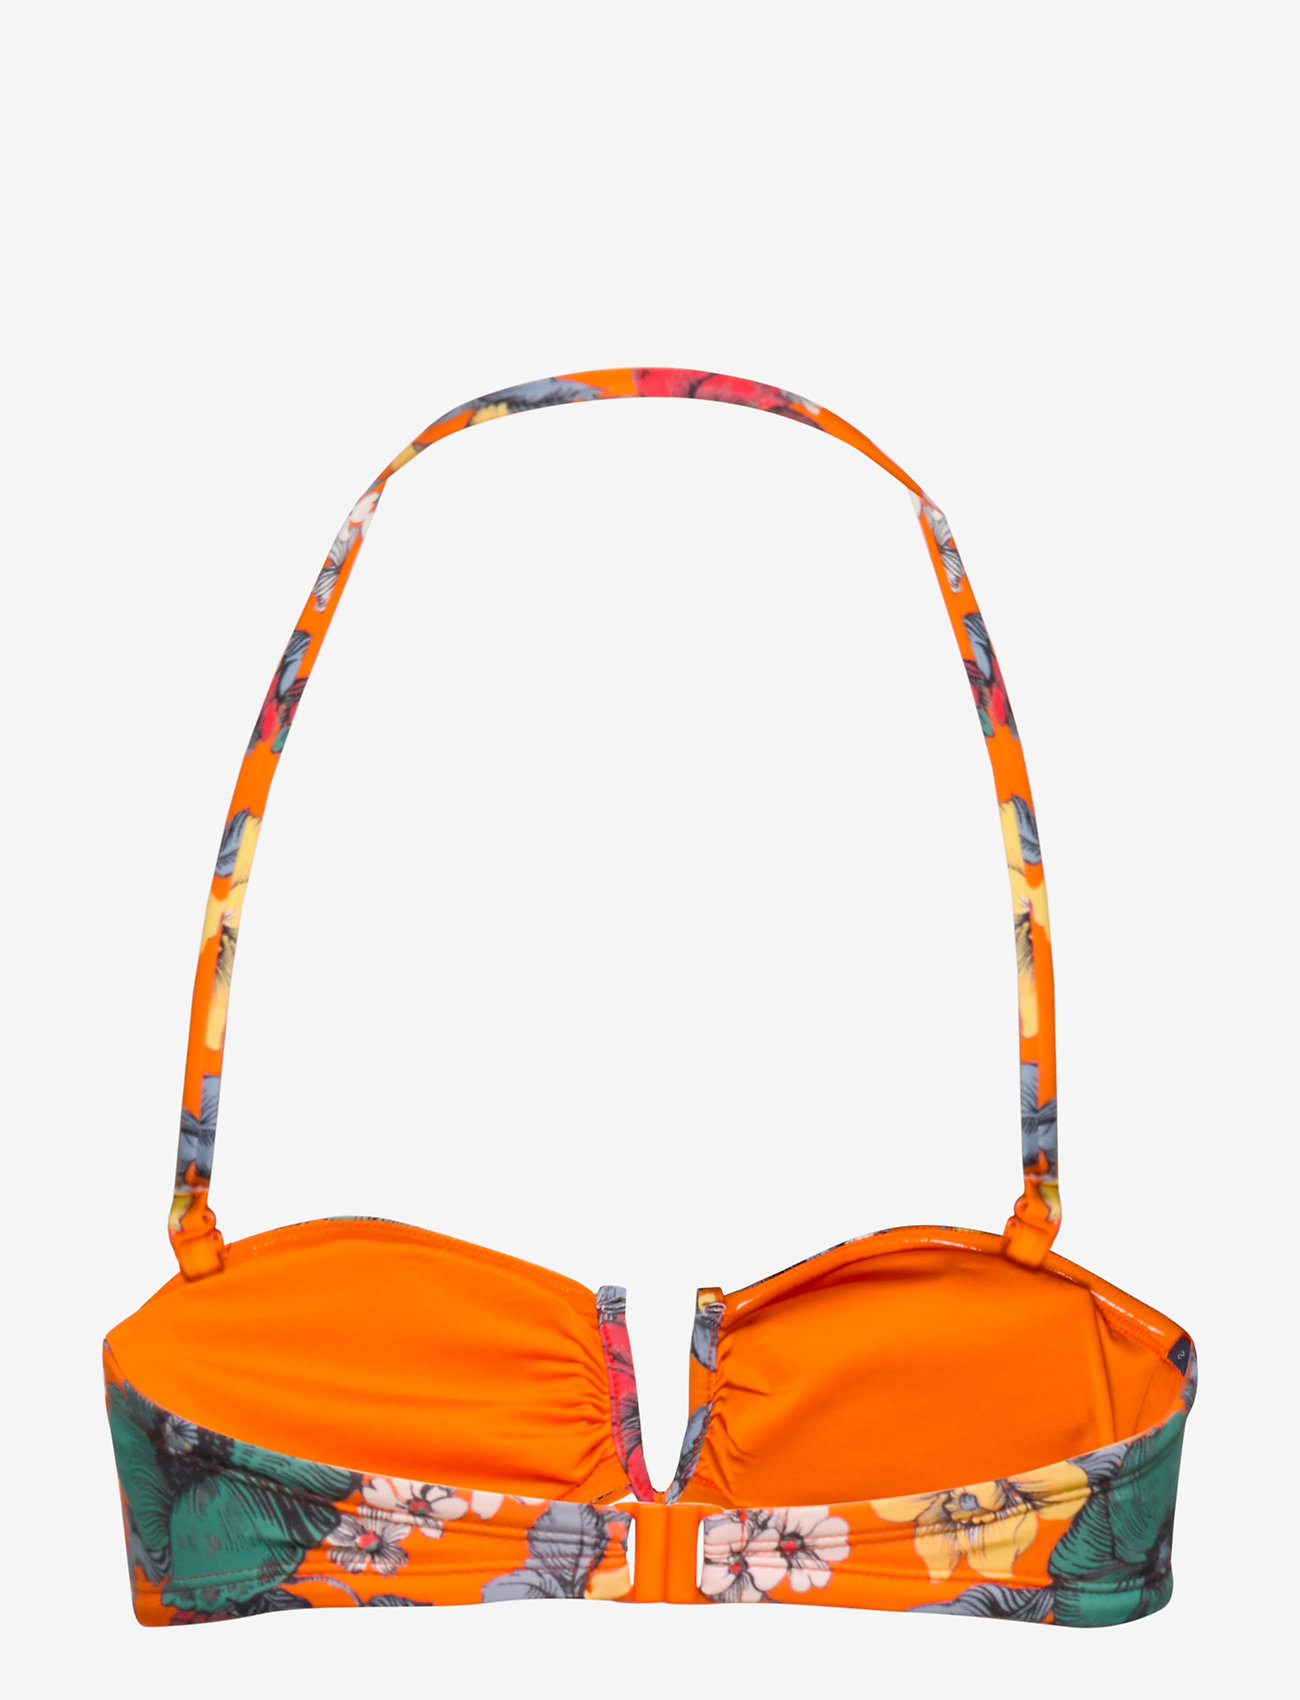 Valetudo Bandeau Bikini Top (Sunshine Orange Mult) (35 €) - French Connection WRZaL